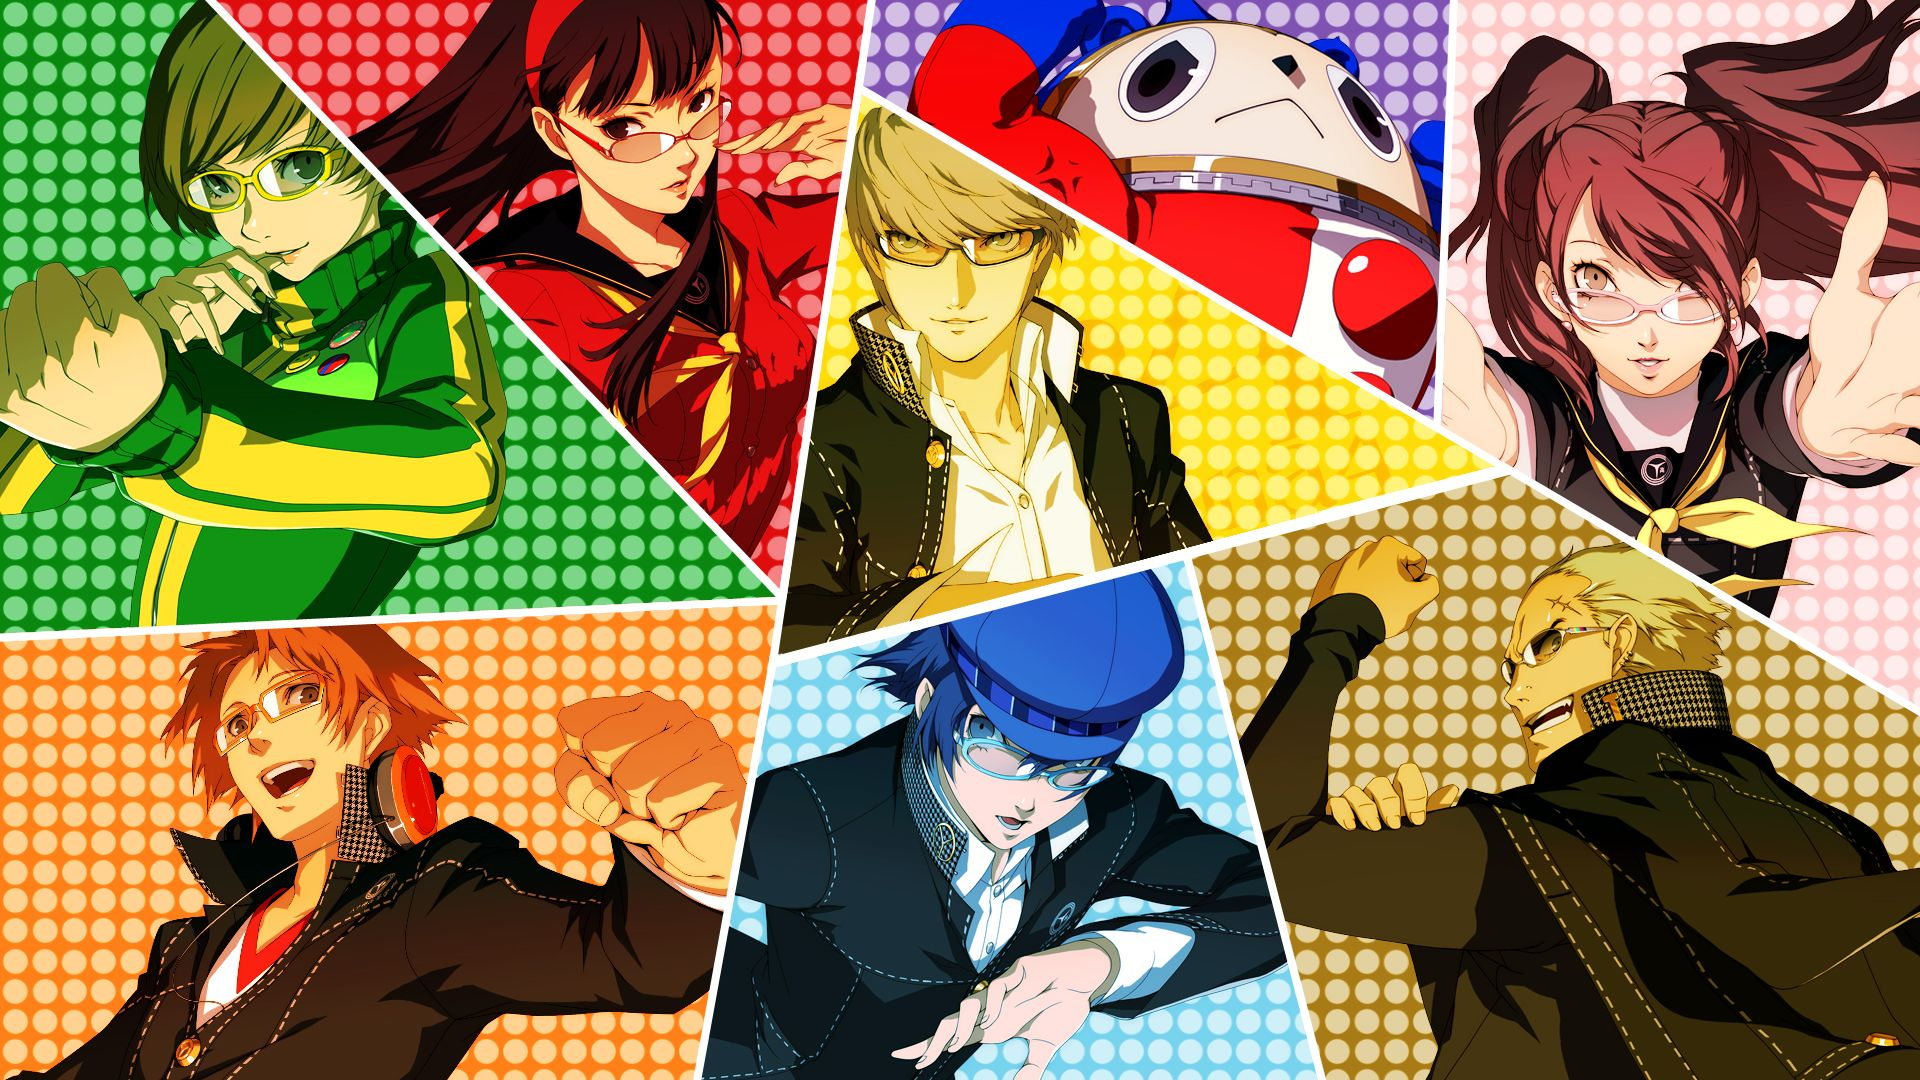 Persona 4 HD Wallpapers Free Download  | Persona squad